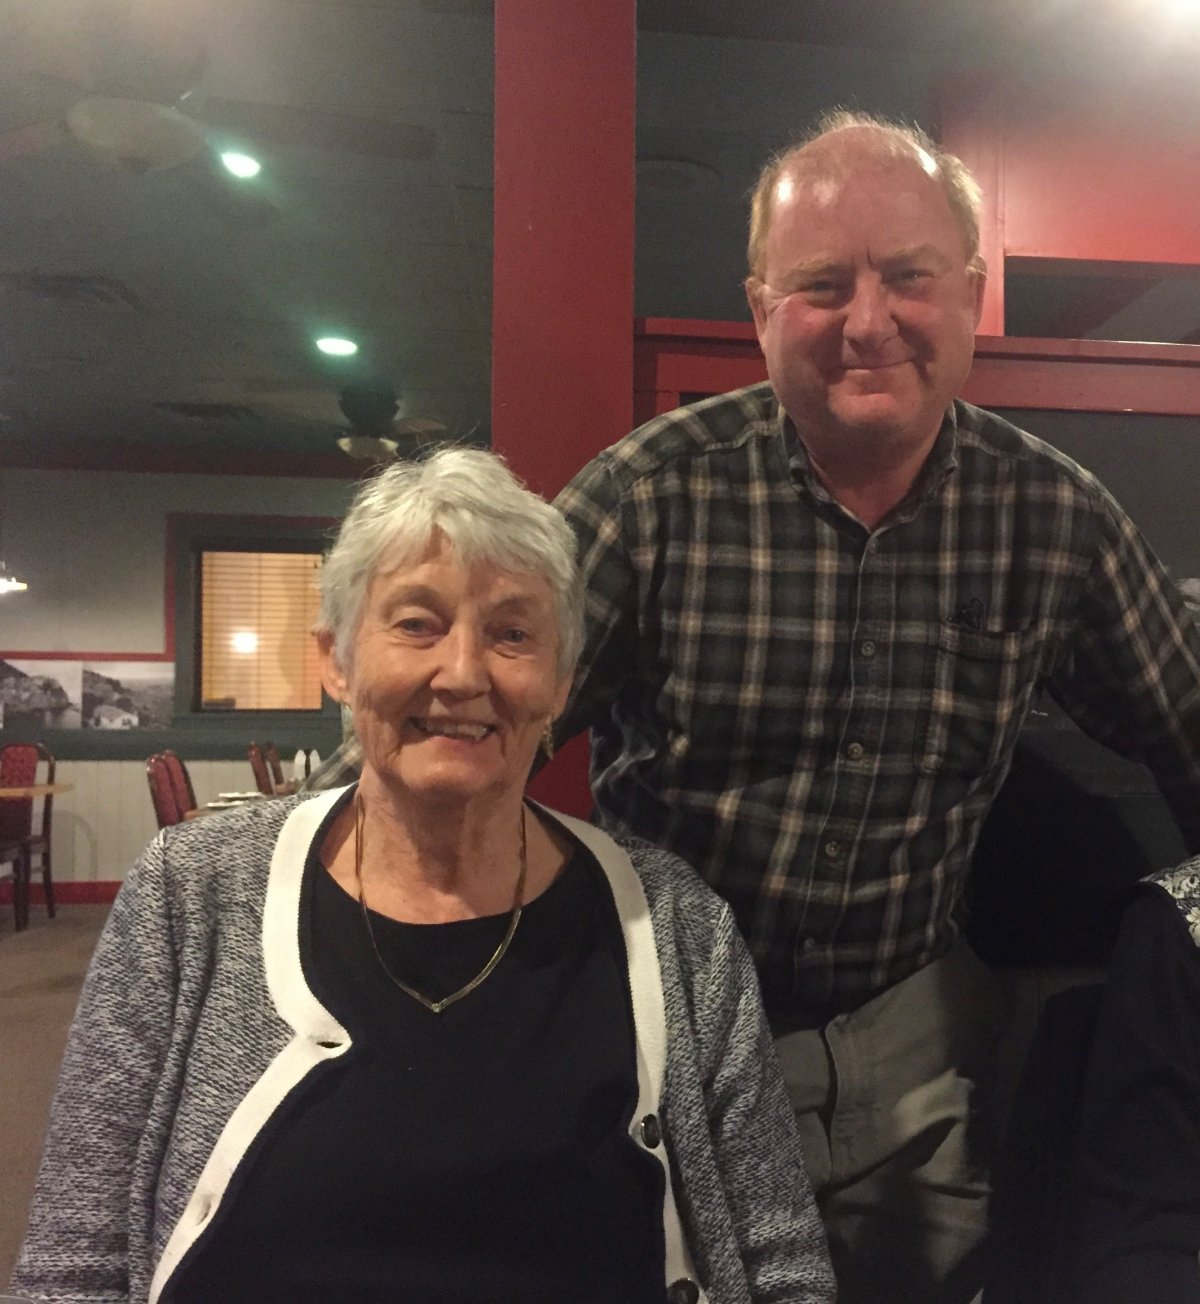 Glenn Chernick is looking forward to visiting with his mother, who lives in a Regina retirement residence, now that the province has relaxed the restrictions around care home visits put in place due to the COVID-19 pandemic.